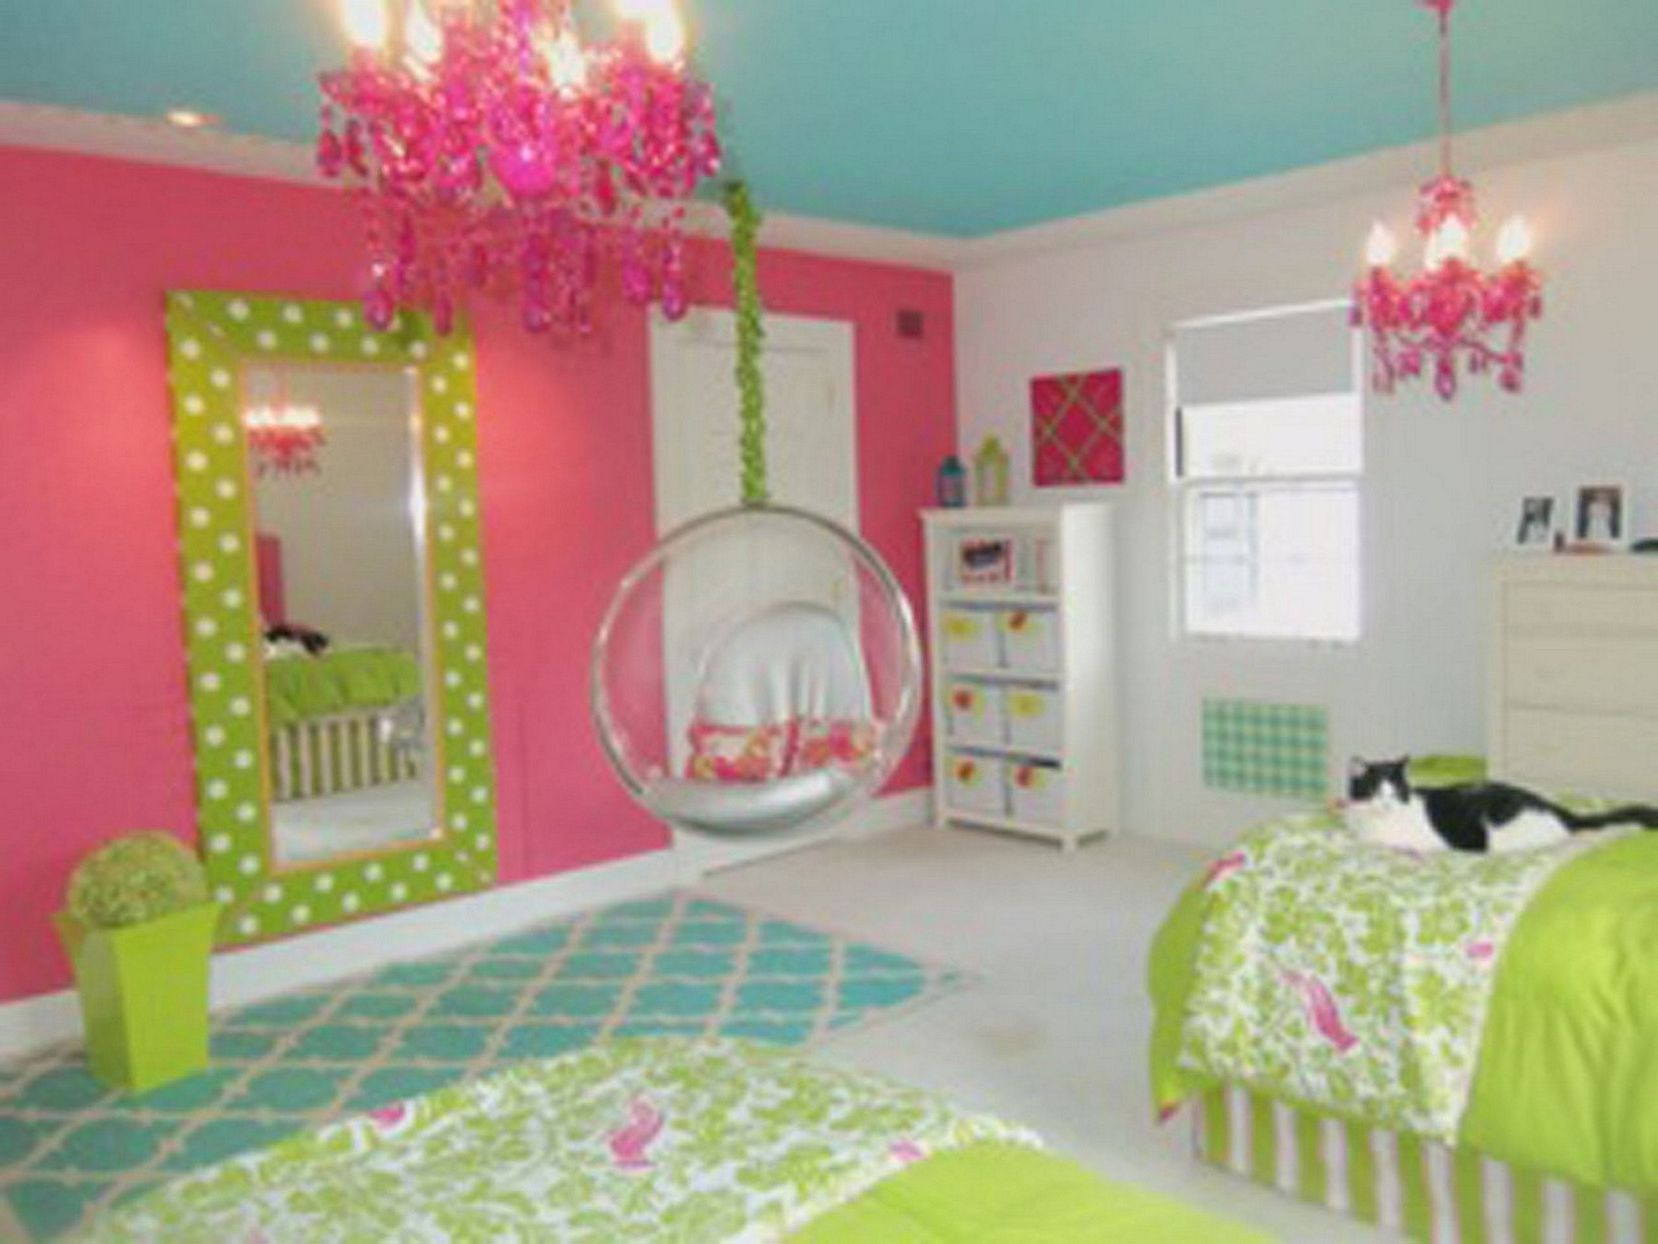 teens room girls bedroom ideas teenage girl diy decor for pictures teens room girls bedroom ideas teenage girl diy decor for pictures 07 regarding apartment bedroom